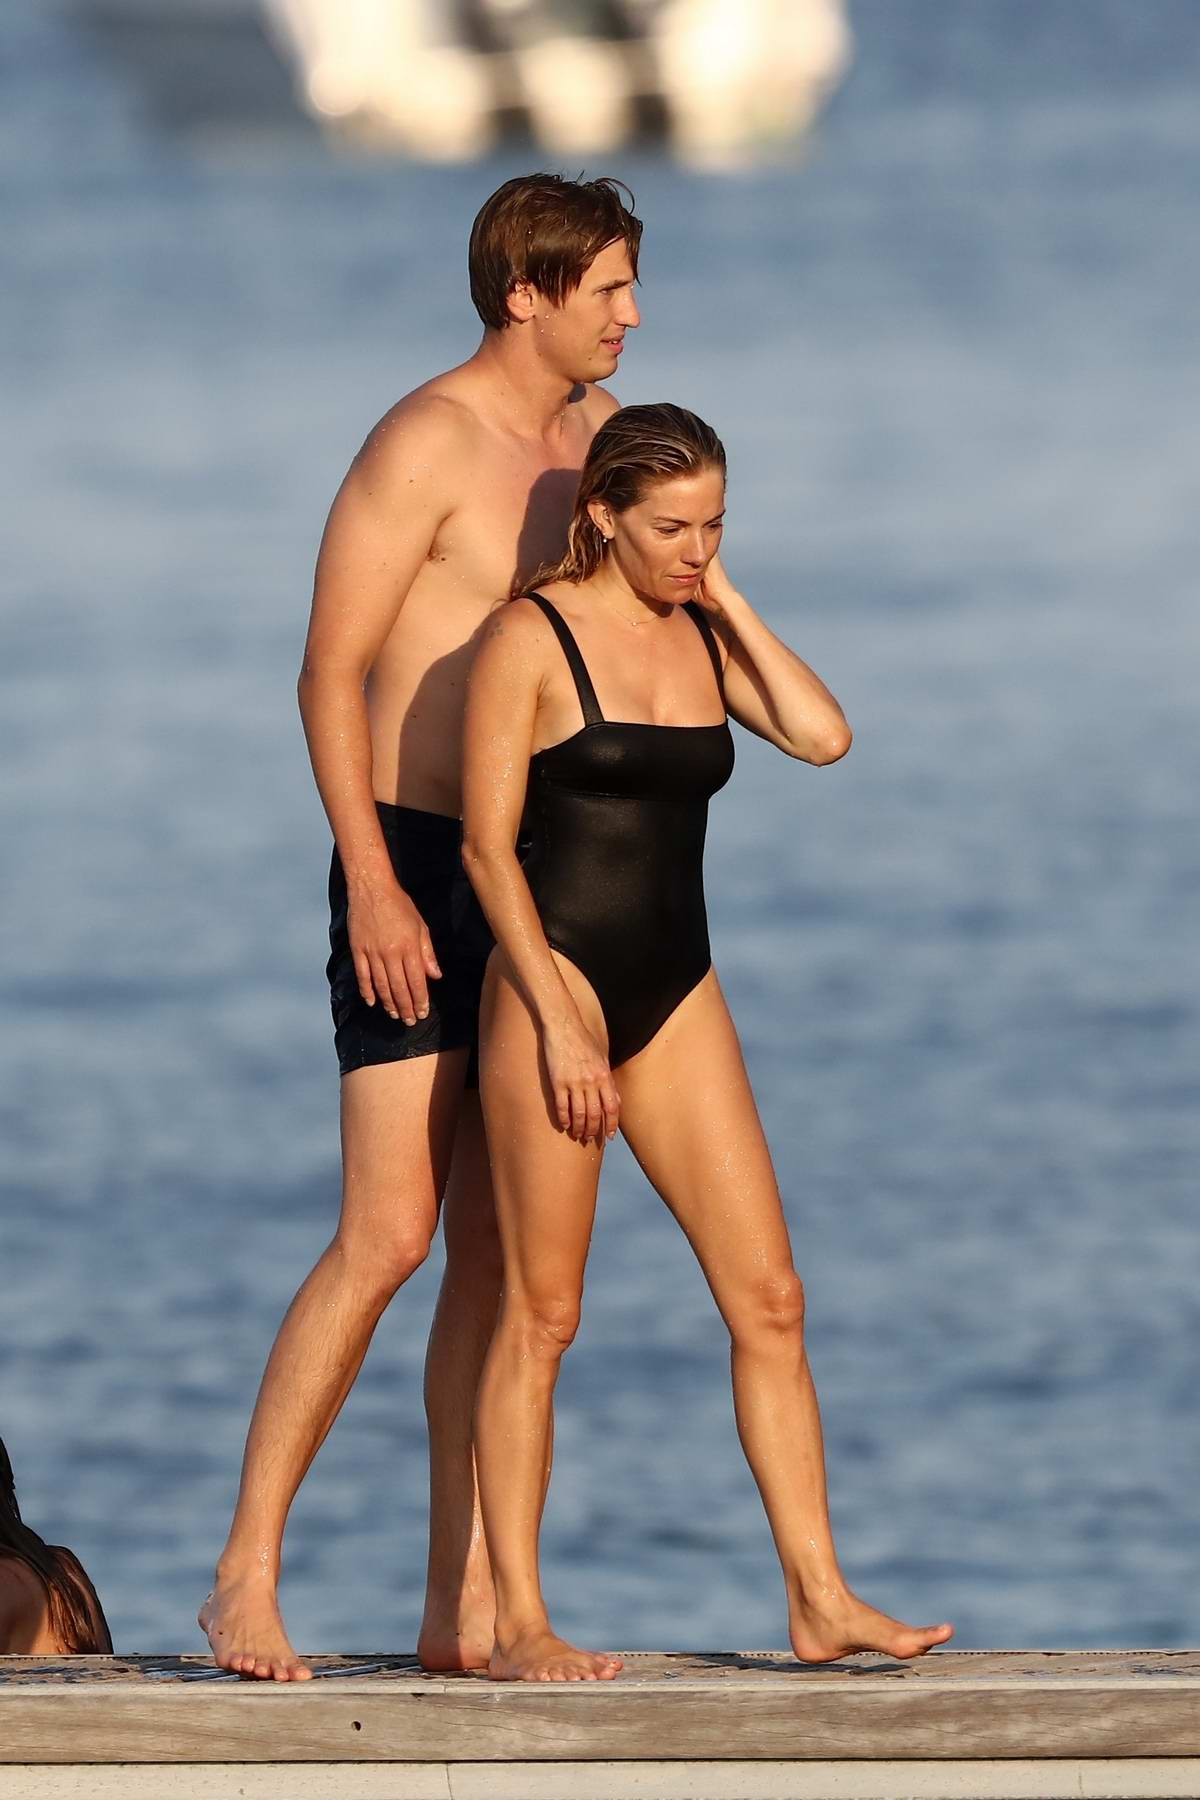 Sienna Miller dons a black swimsuit as she hits the beach with boyfriend Lucas Zwirner in Saint-Tropez, France